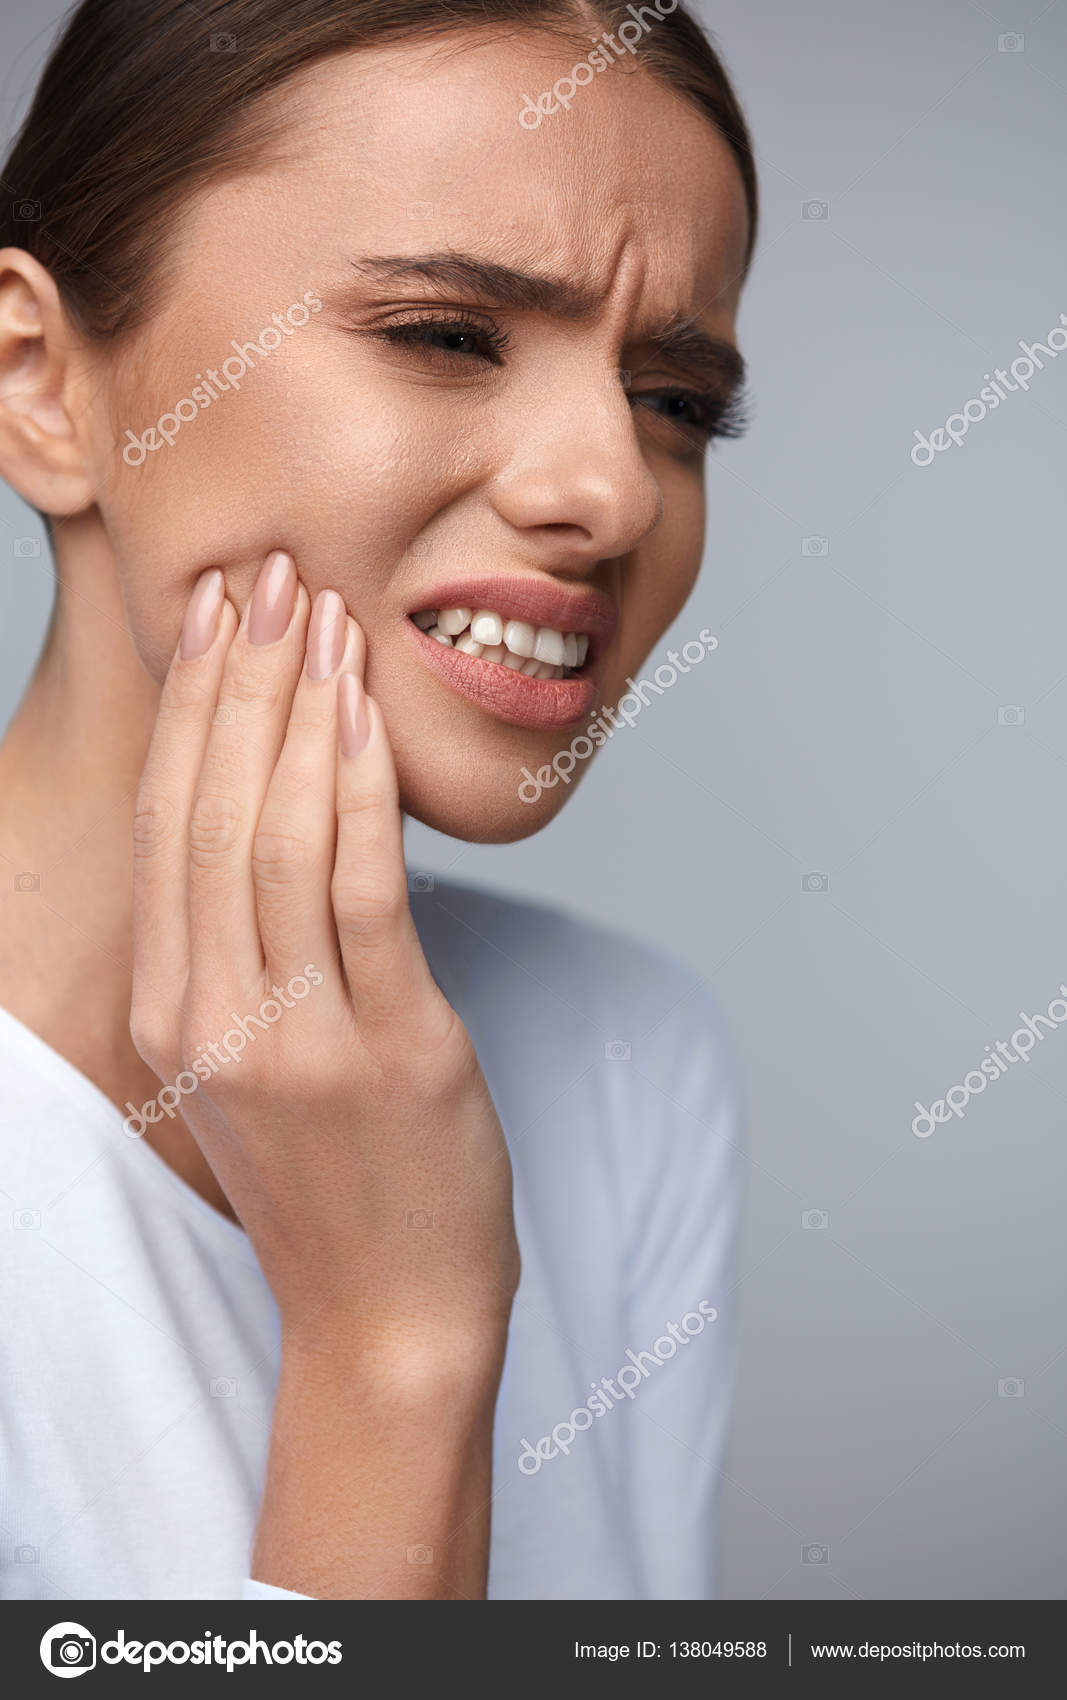 Teeth Pain And Dental Health. Portrait Of Beautiful Woman Suffering From  Annoying Strong Teeth Pain, Touching Her Face With Hand, Feeling Painful  Toothache.